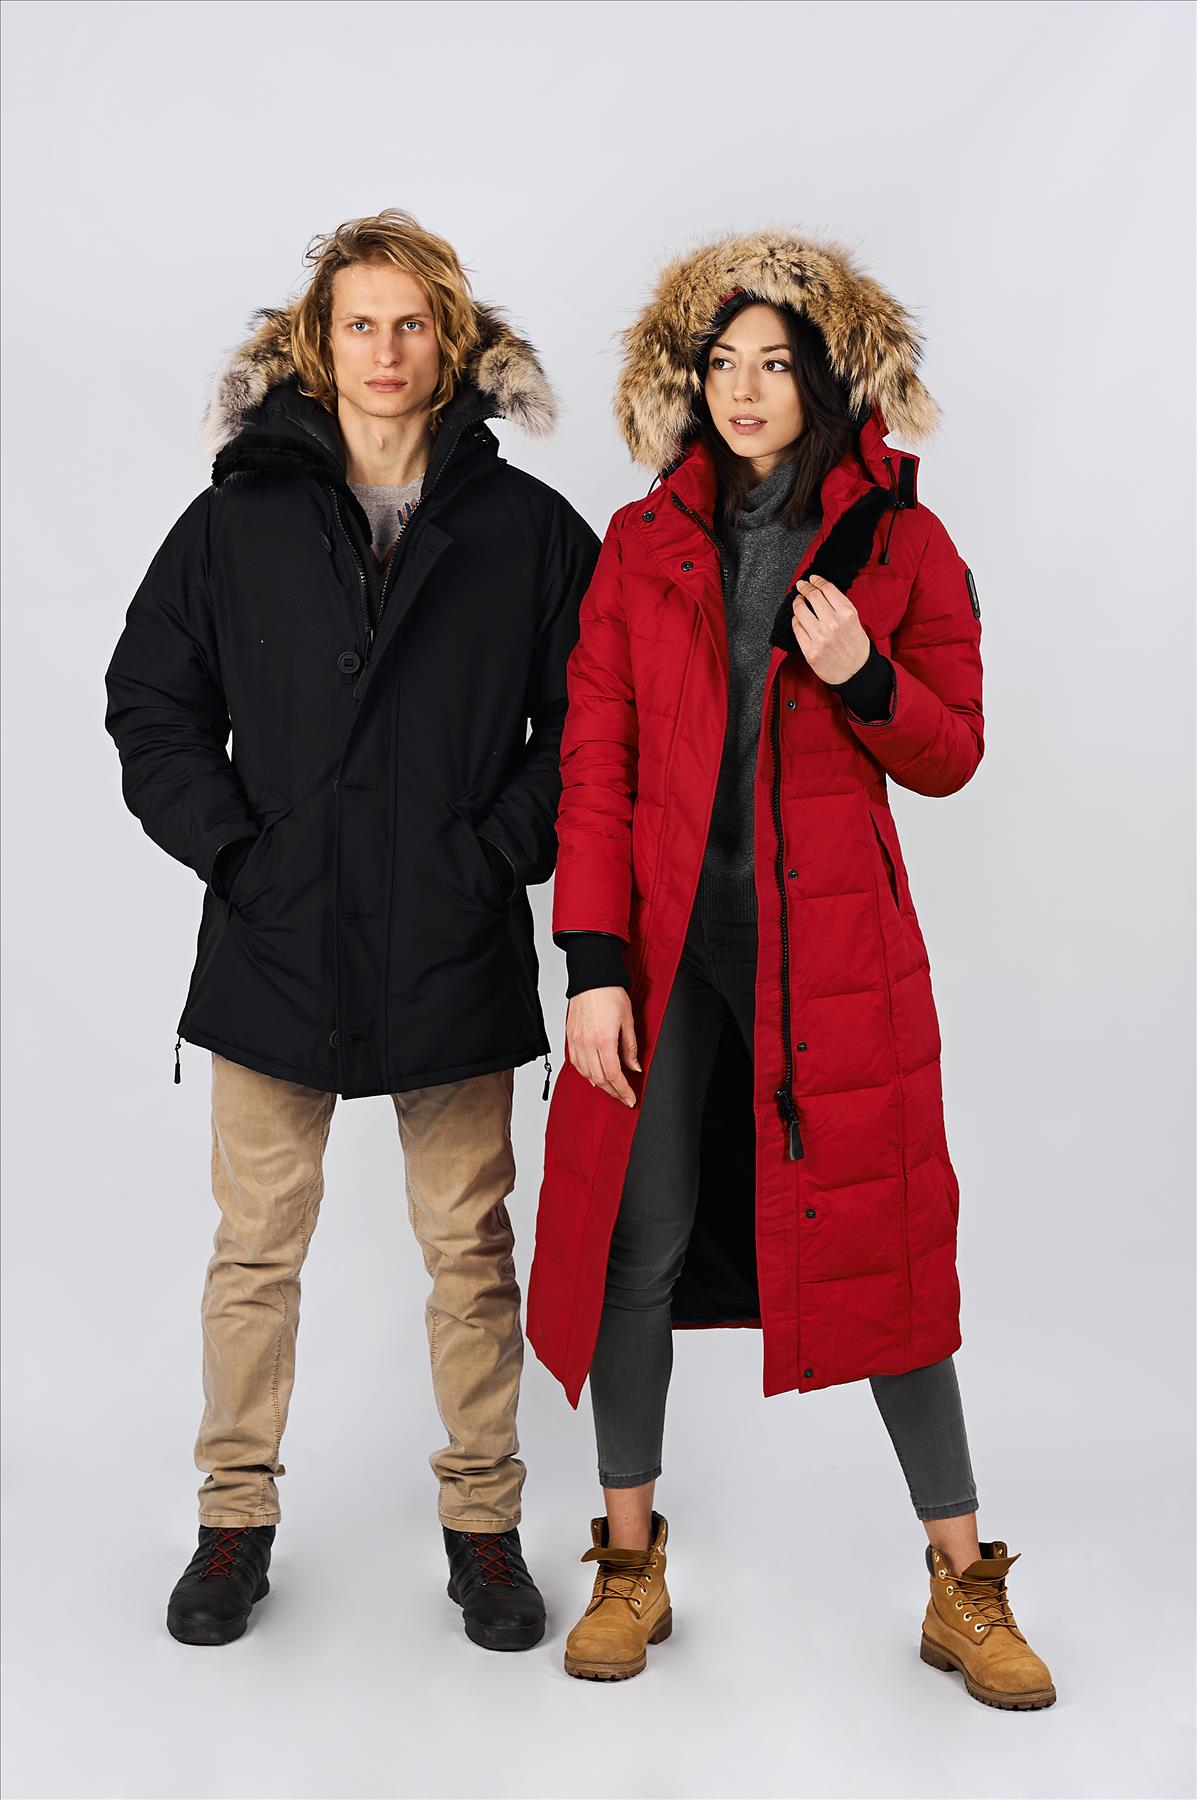 Arctic Bay Winter Parkas: How to Choose the Best Fit for You